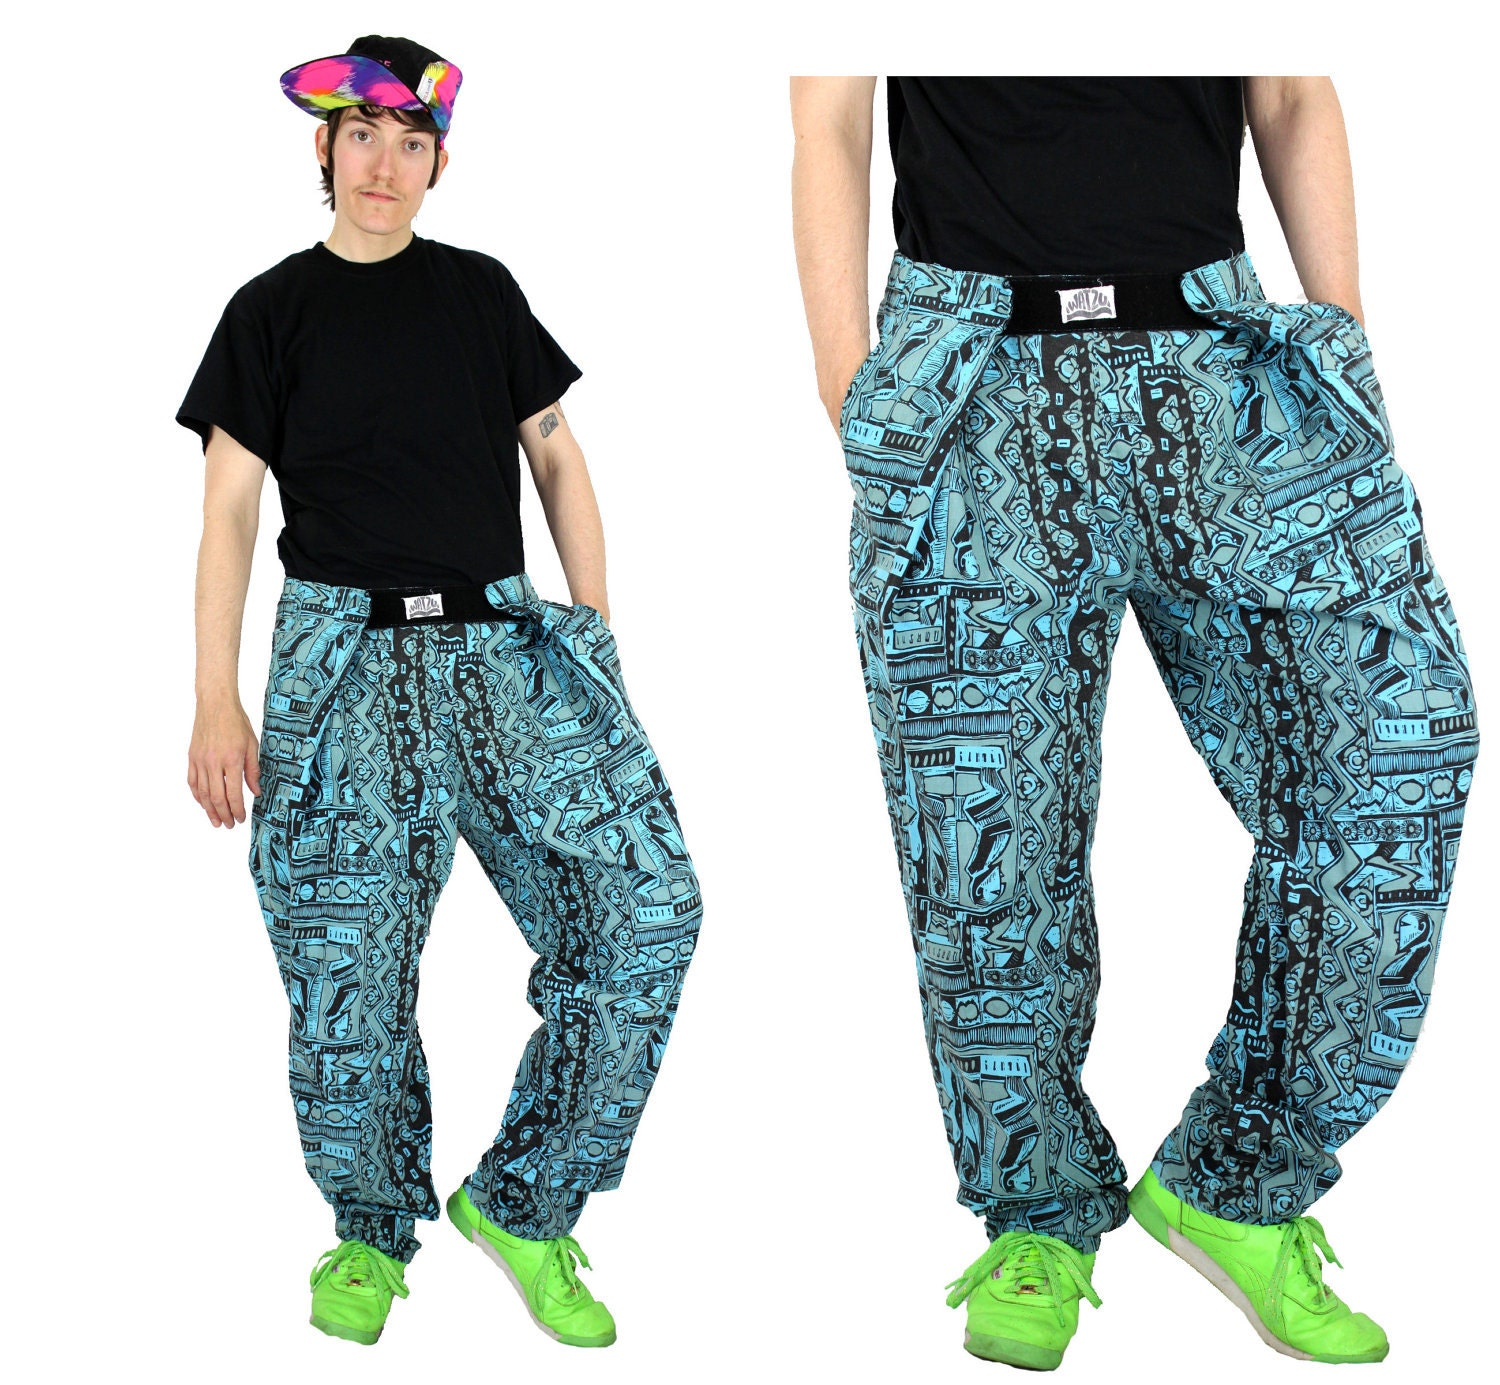 22 awesome mc hammer pants for women � playzoacom